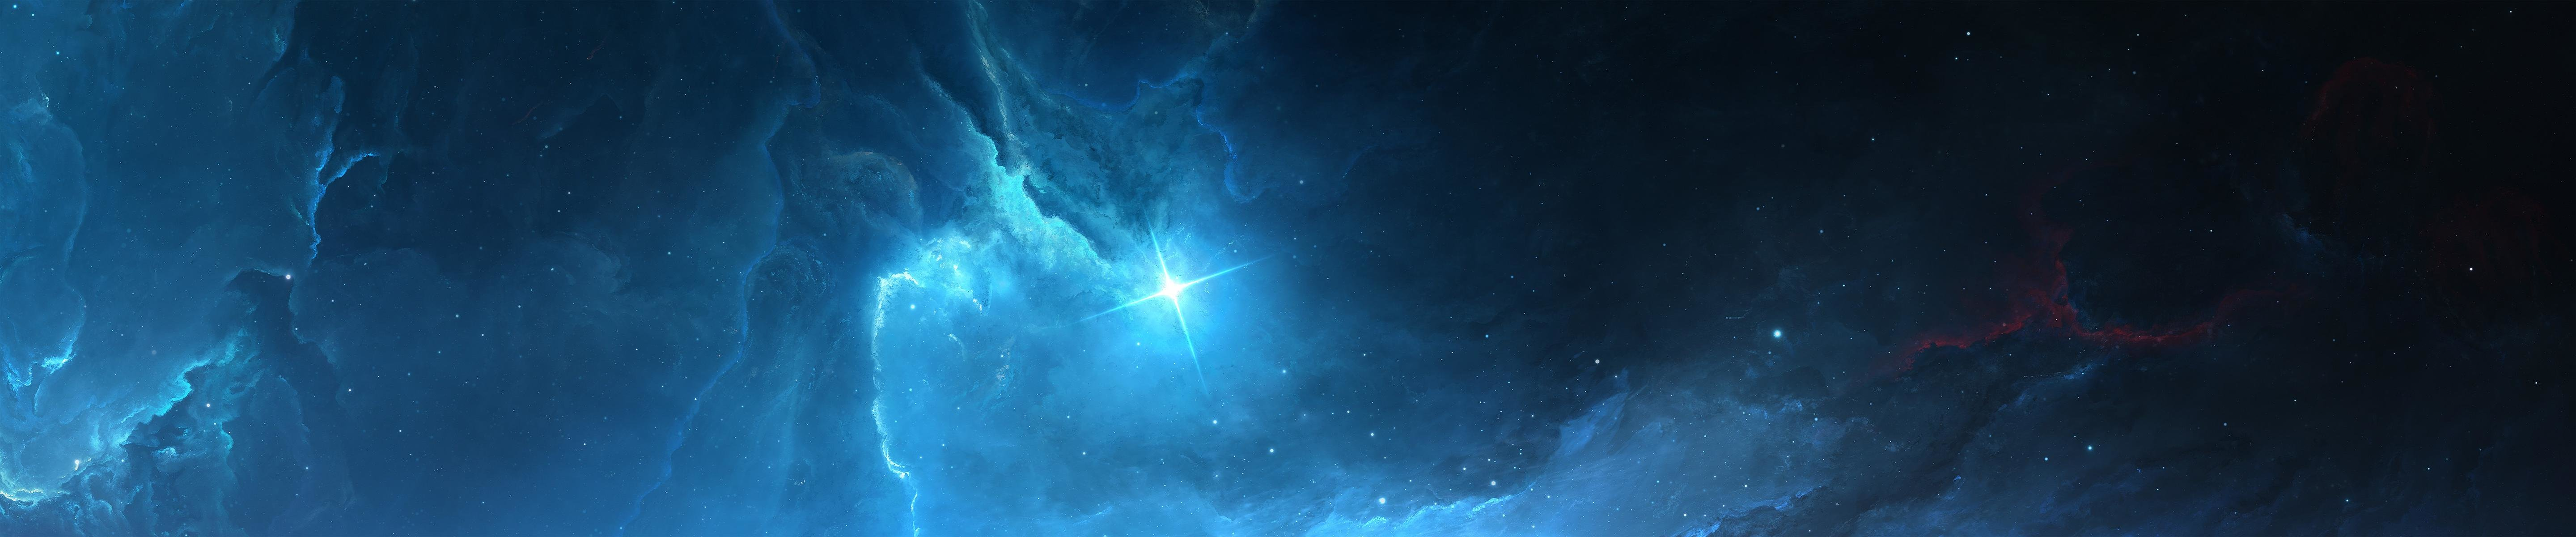 Free download Nebula background ID:91630 triple monitor 5760x1200 for PC